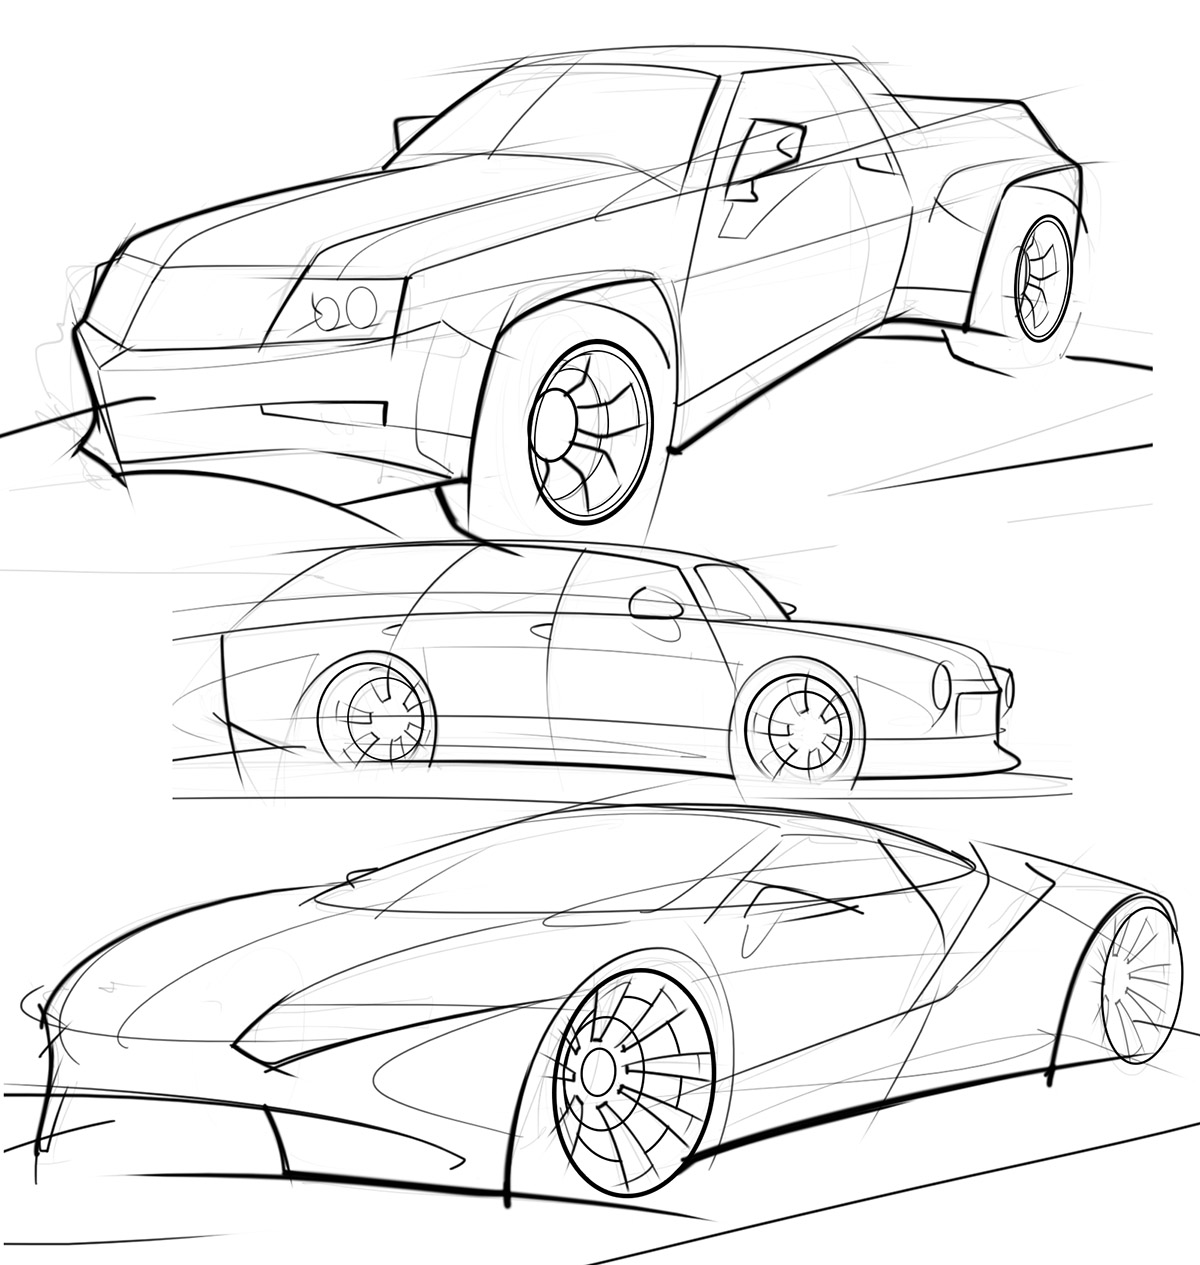 car sketches with varied line weights